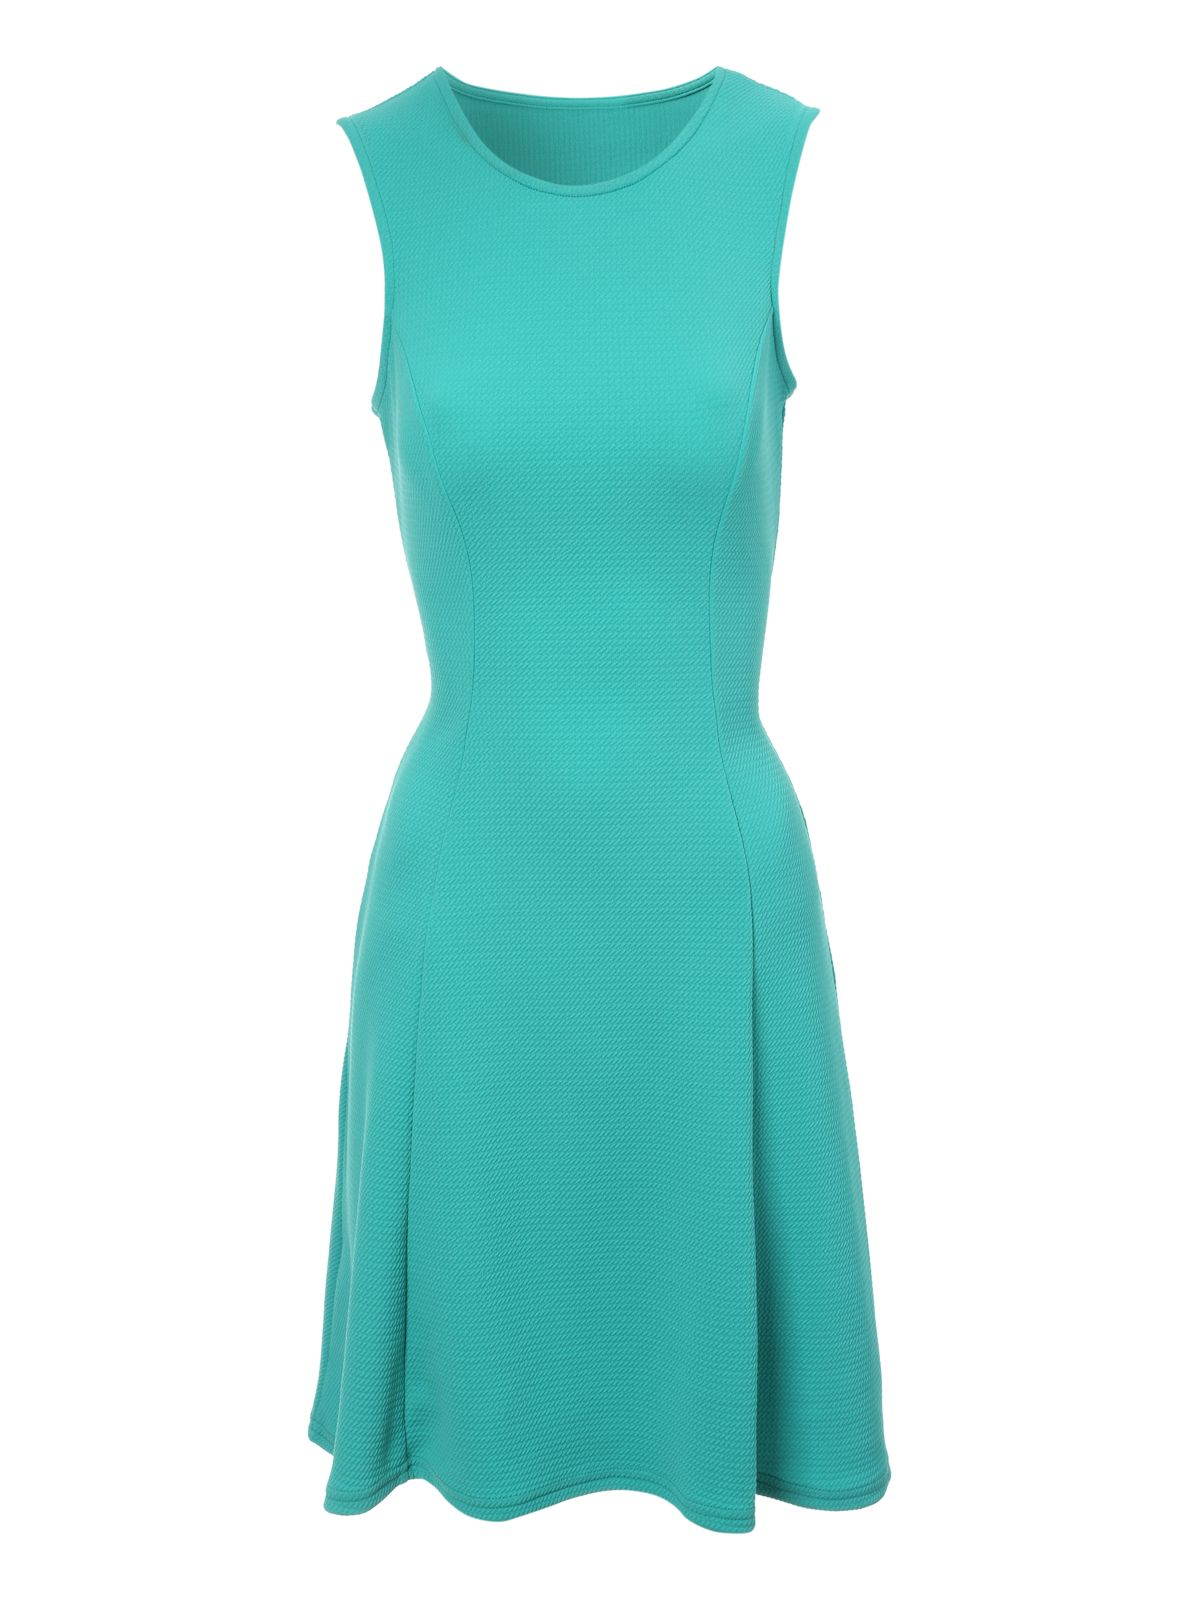 Jane Norman Fit And Flare Dress, Green